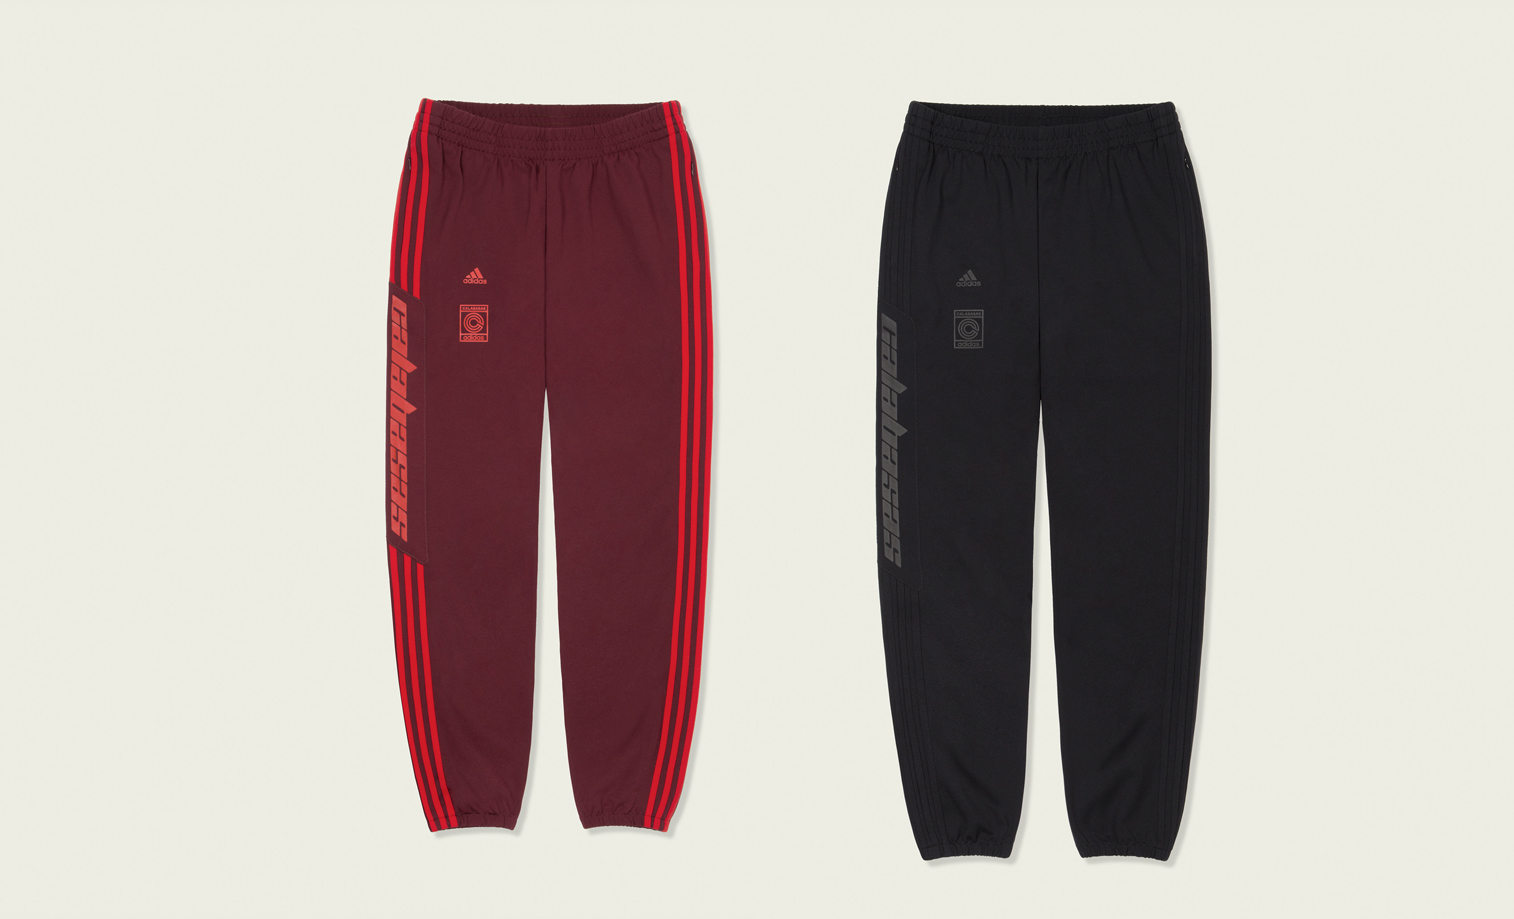 a7353348dd9 Constructed of double-knit nylon fabrication, the pant features 'CALABASAS'  text and contrasting adidas 3-Stripes.